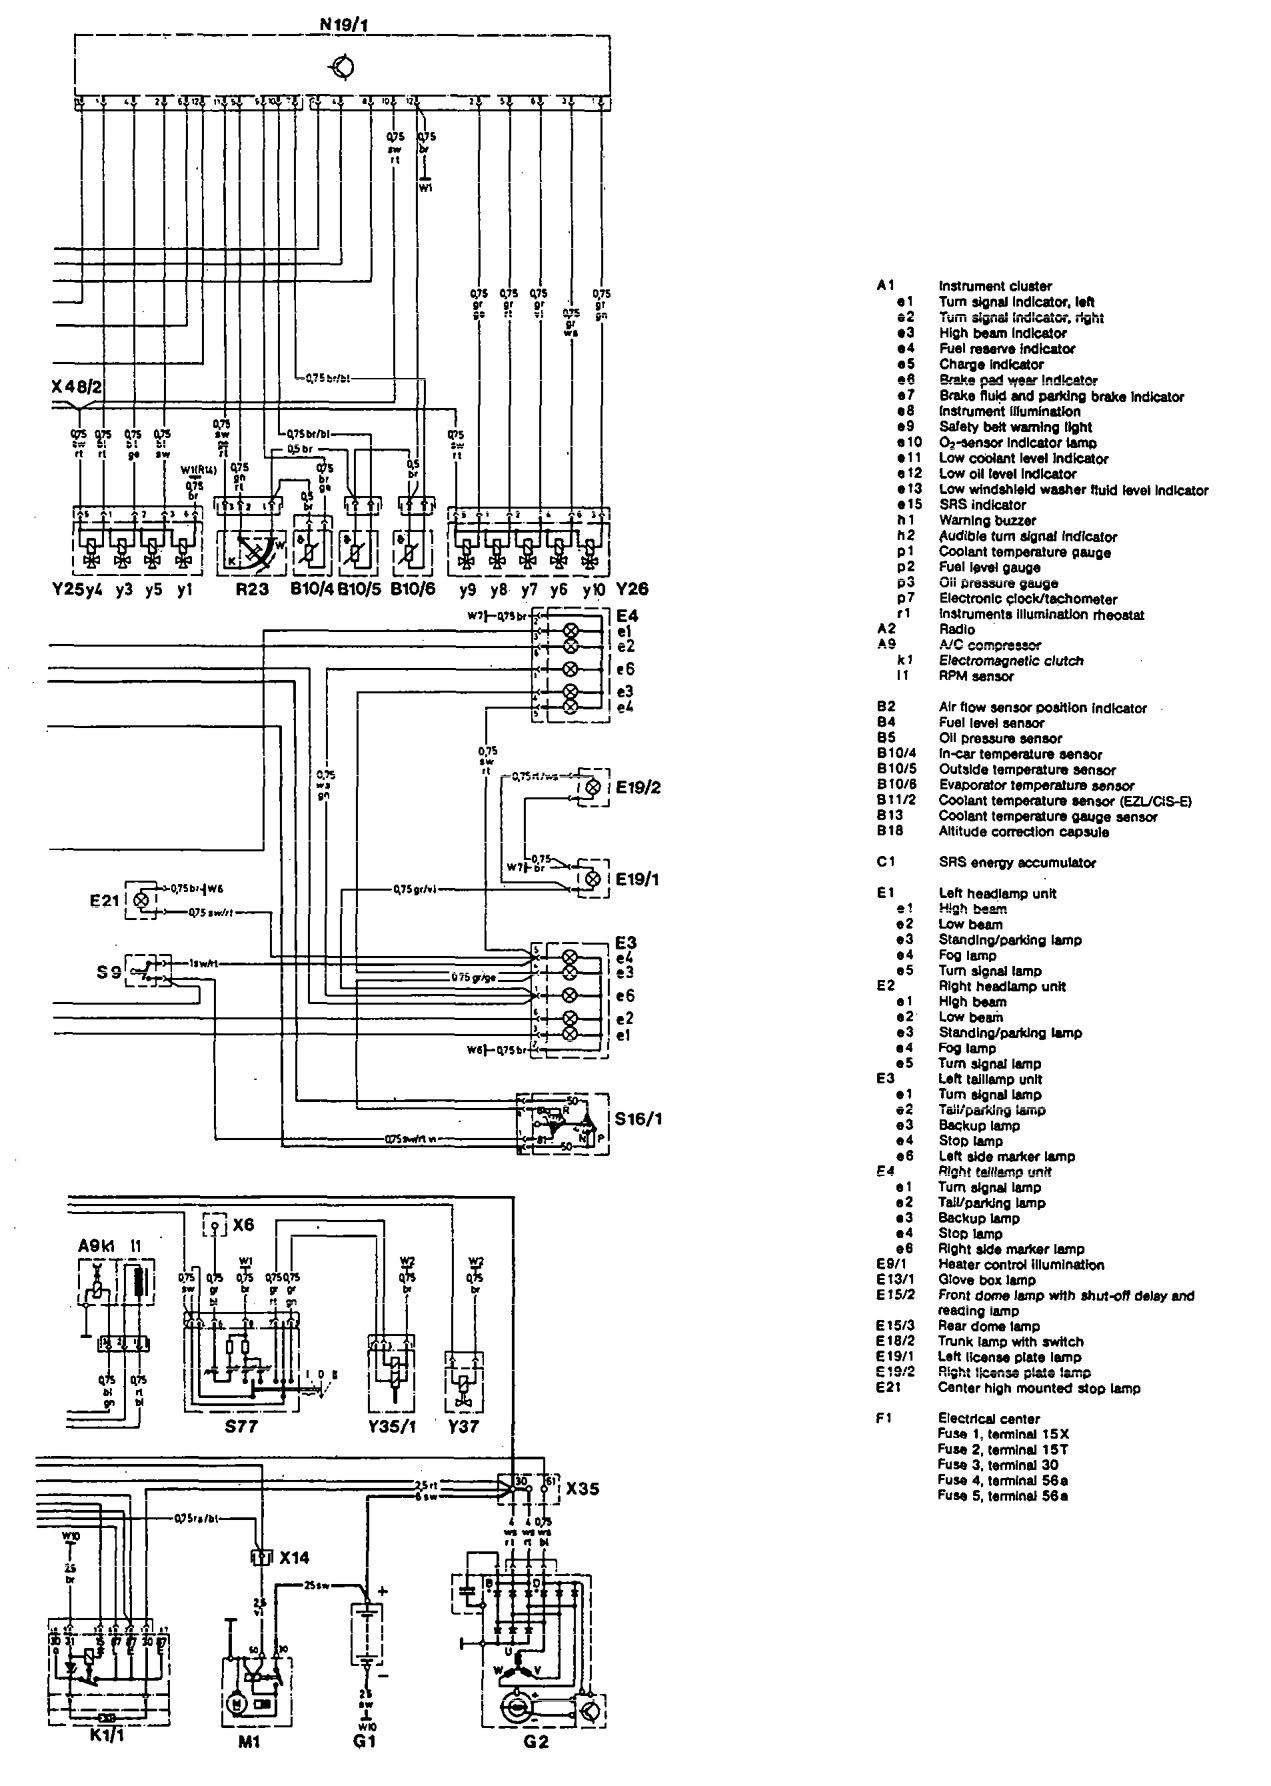 hight resolution of 2001 mercedes benz c240 fuse box map besides 1995 mercedes benz c 220 fuse box diagram